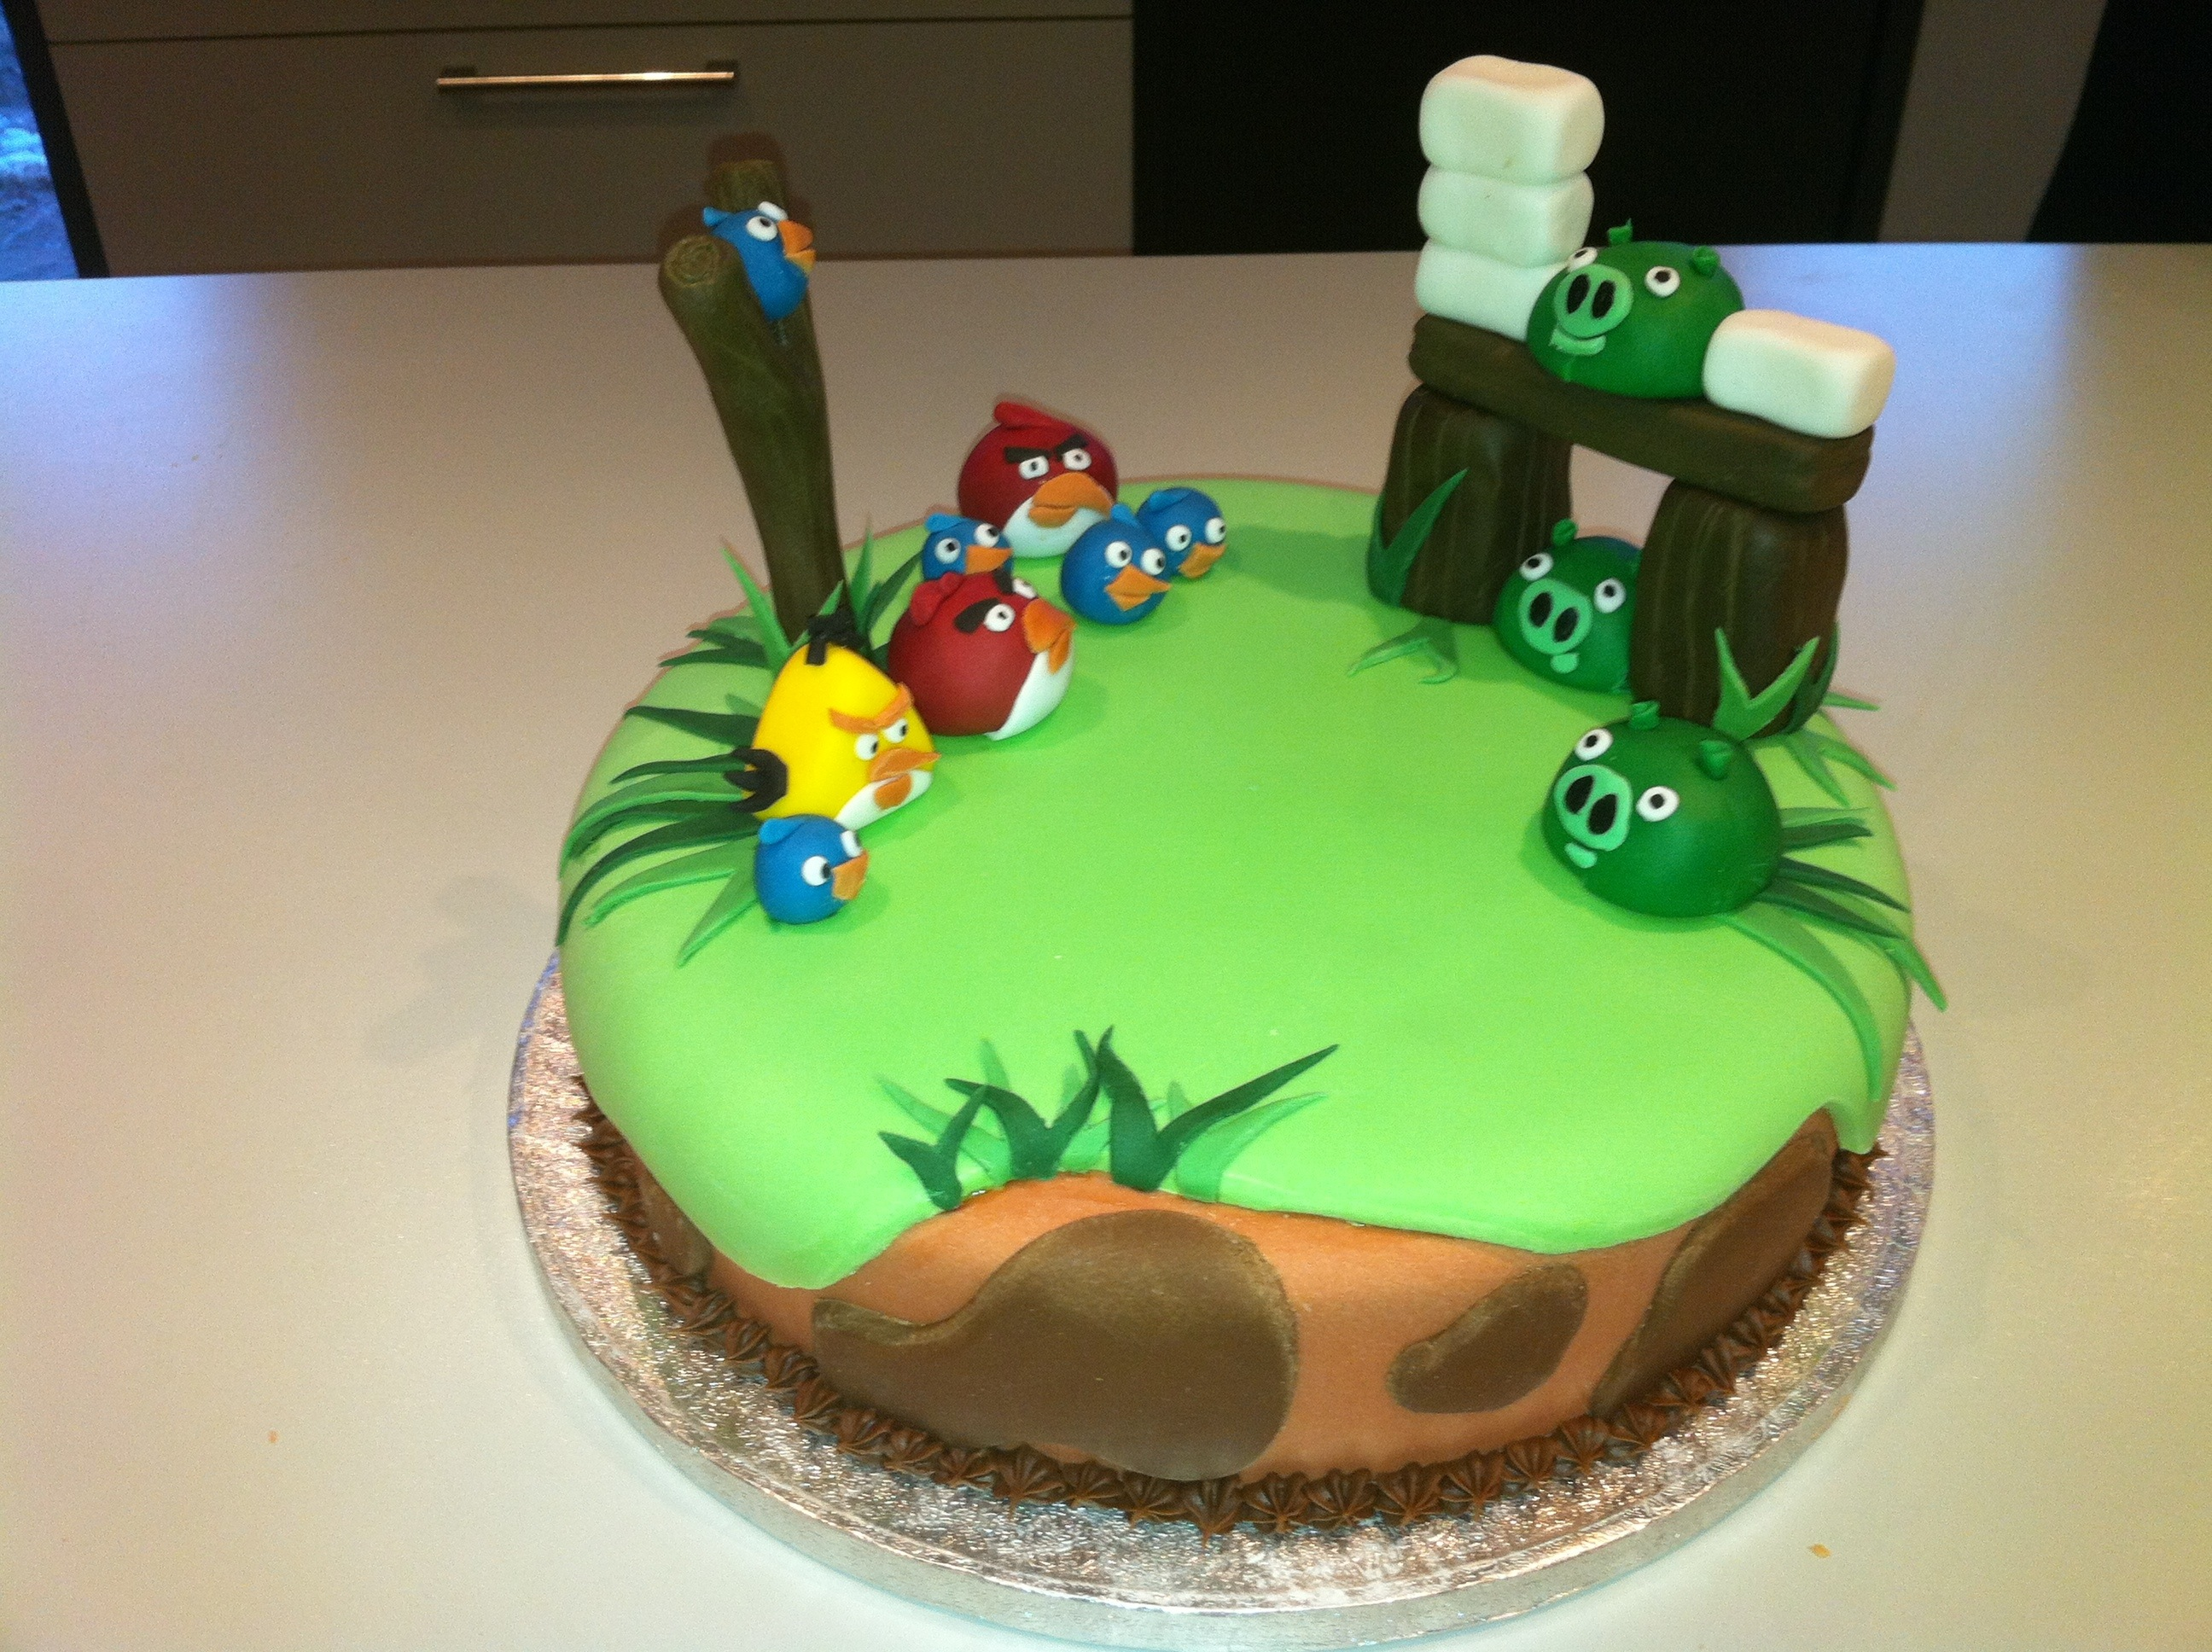 Pictures Of Angry Birds Birthday Cakes : Angry birds cake   Cakes by Melissa